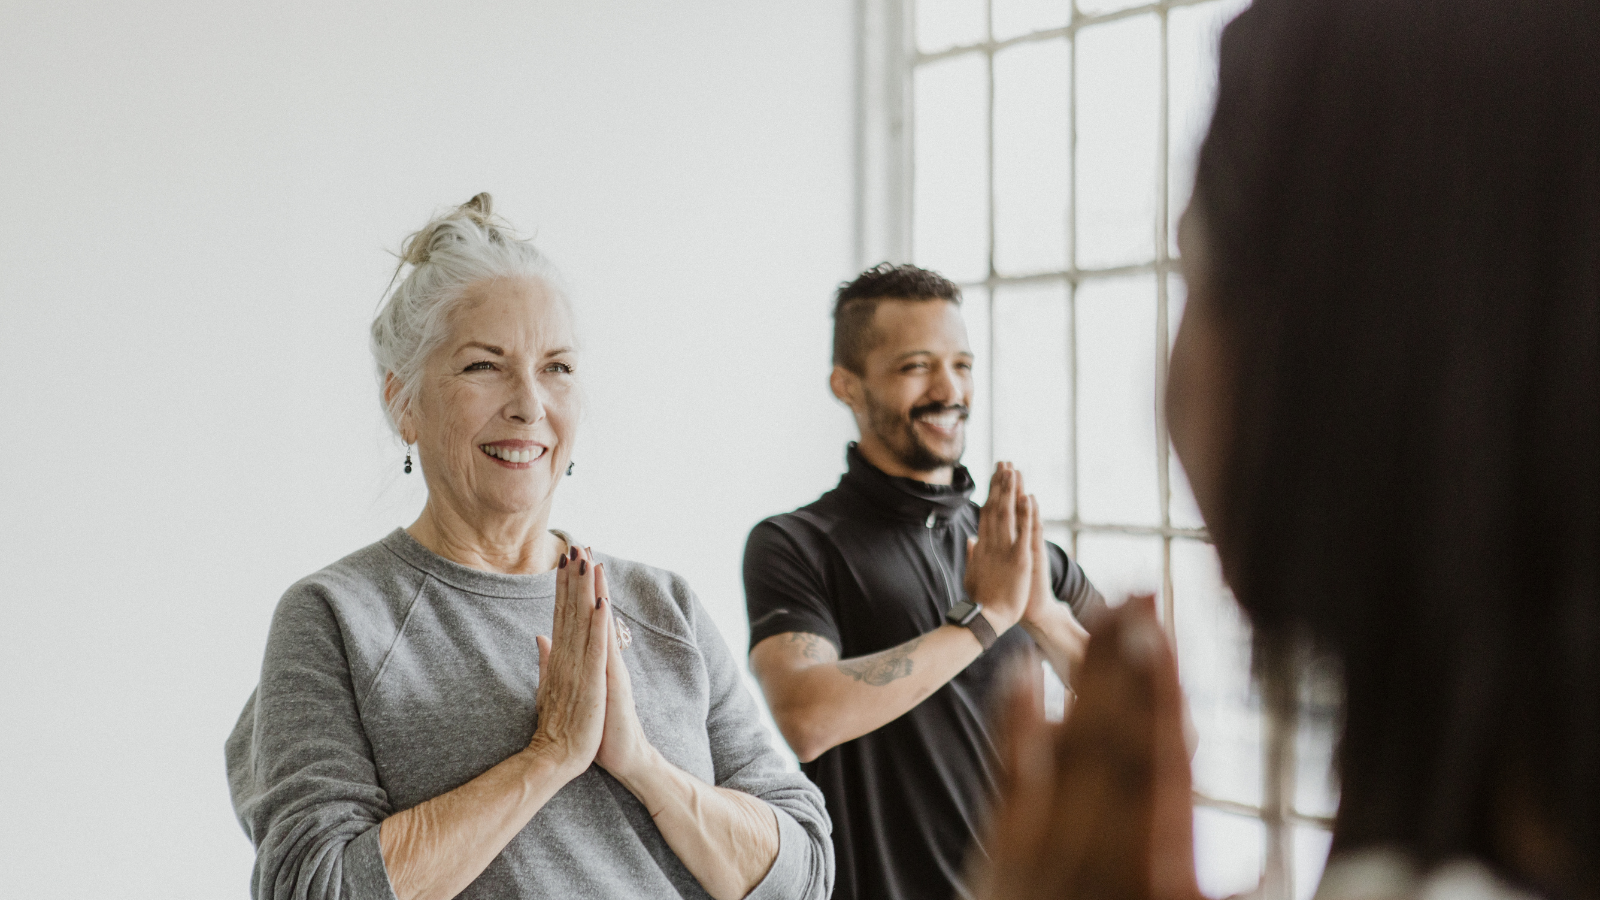 How to practice yoga and mindfulness for greater authenticity